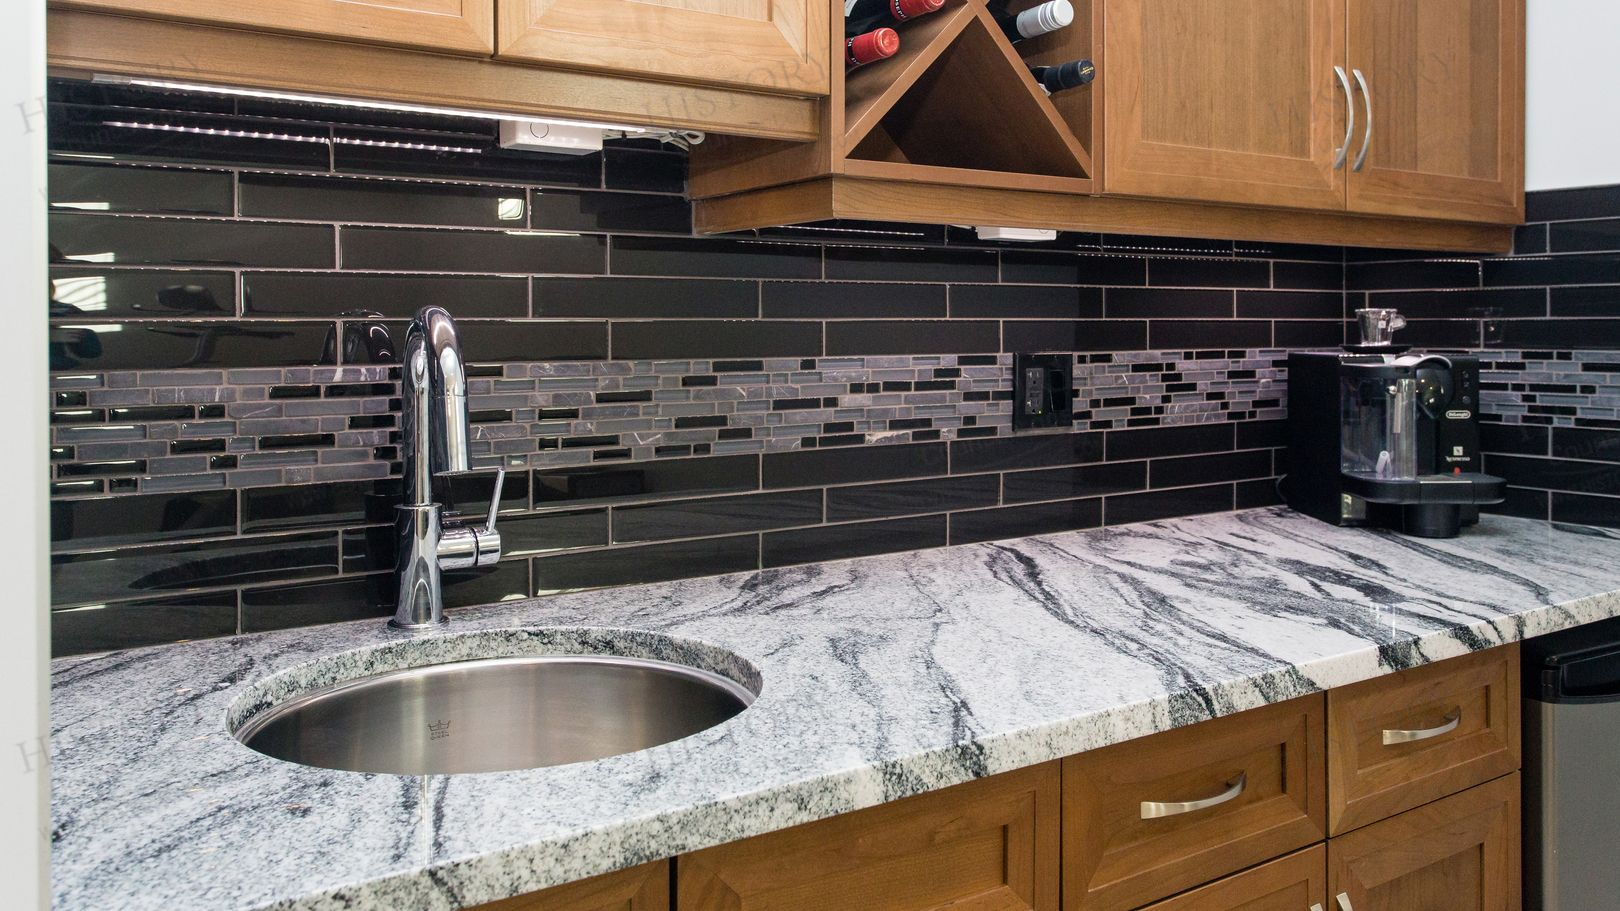 India Viscont White Granite Countertops I Like The Combination Of